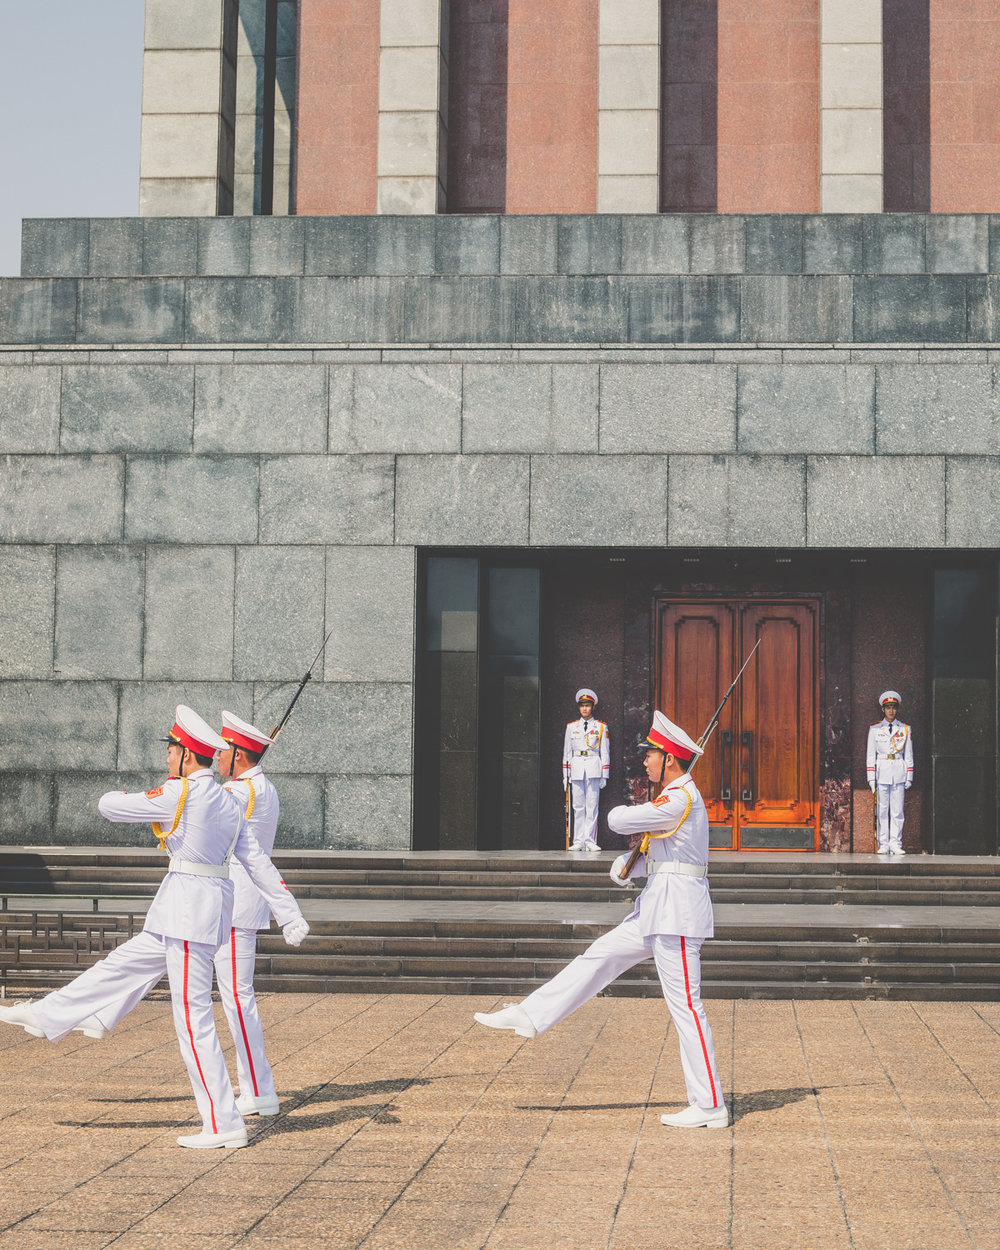 Attractions in Hanoi - Ho Chi Minh Mausoleum